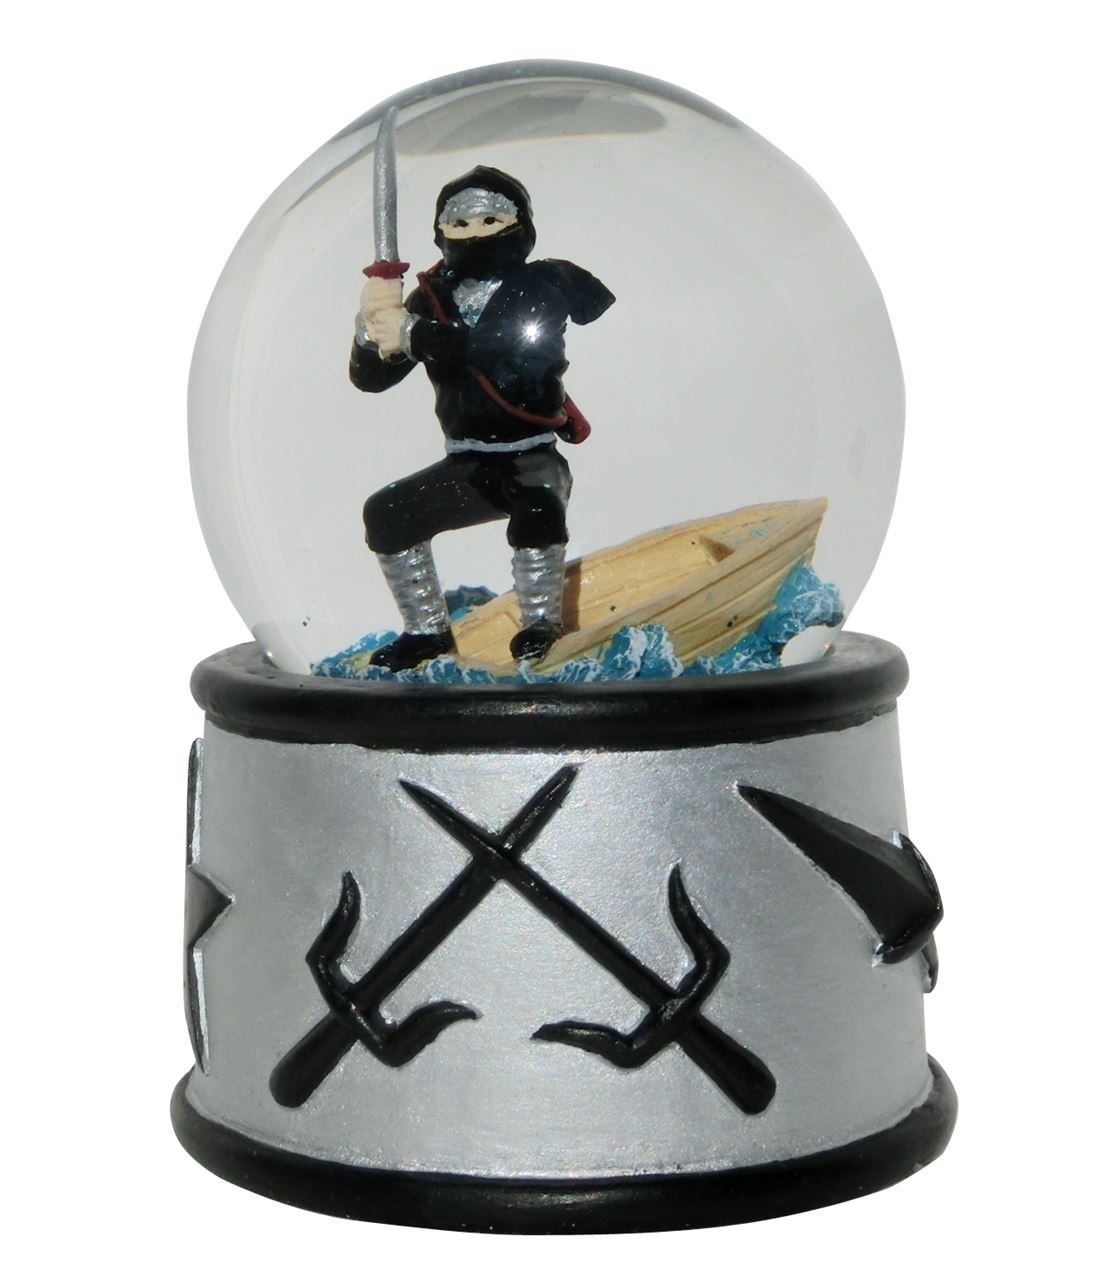 Amazon.com: Sound Snow Dome Out Off Sound Snowflakes Ninja ...